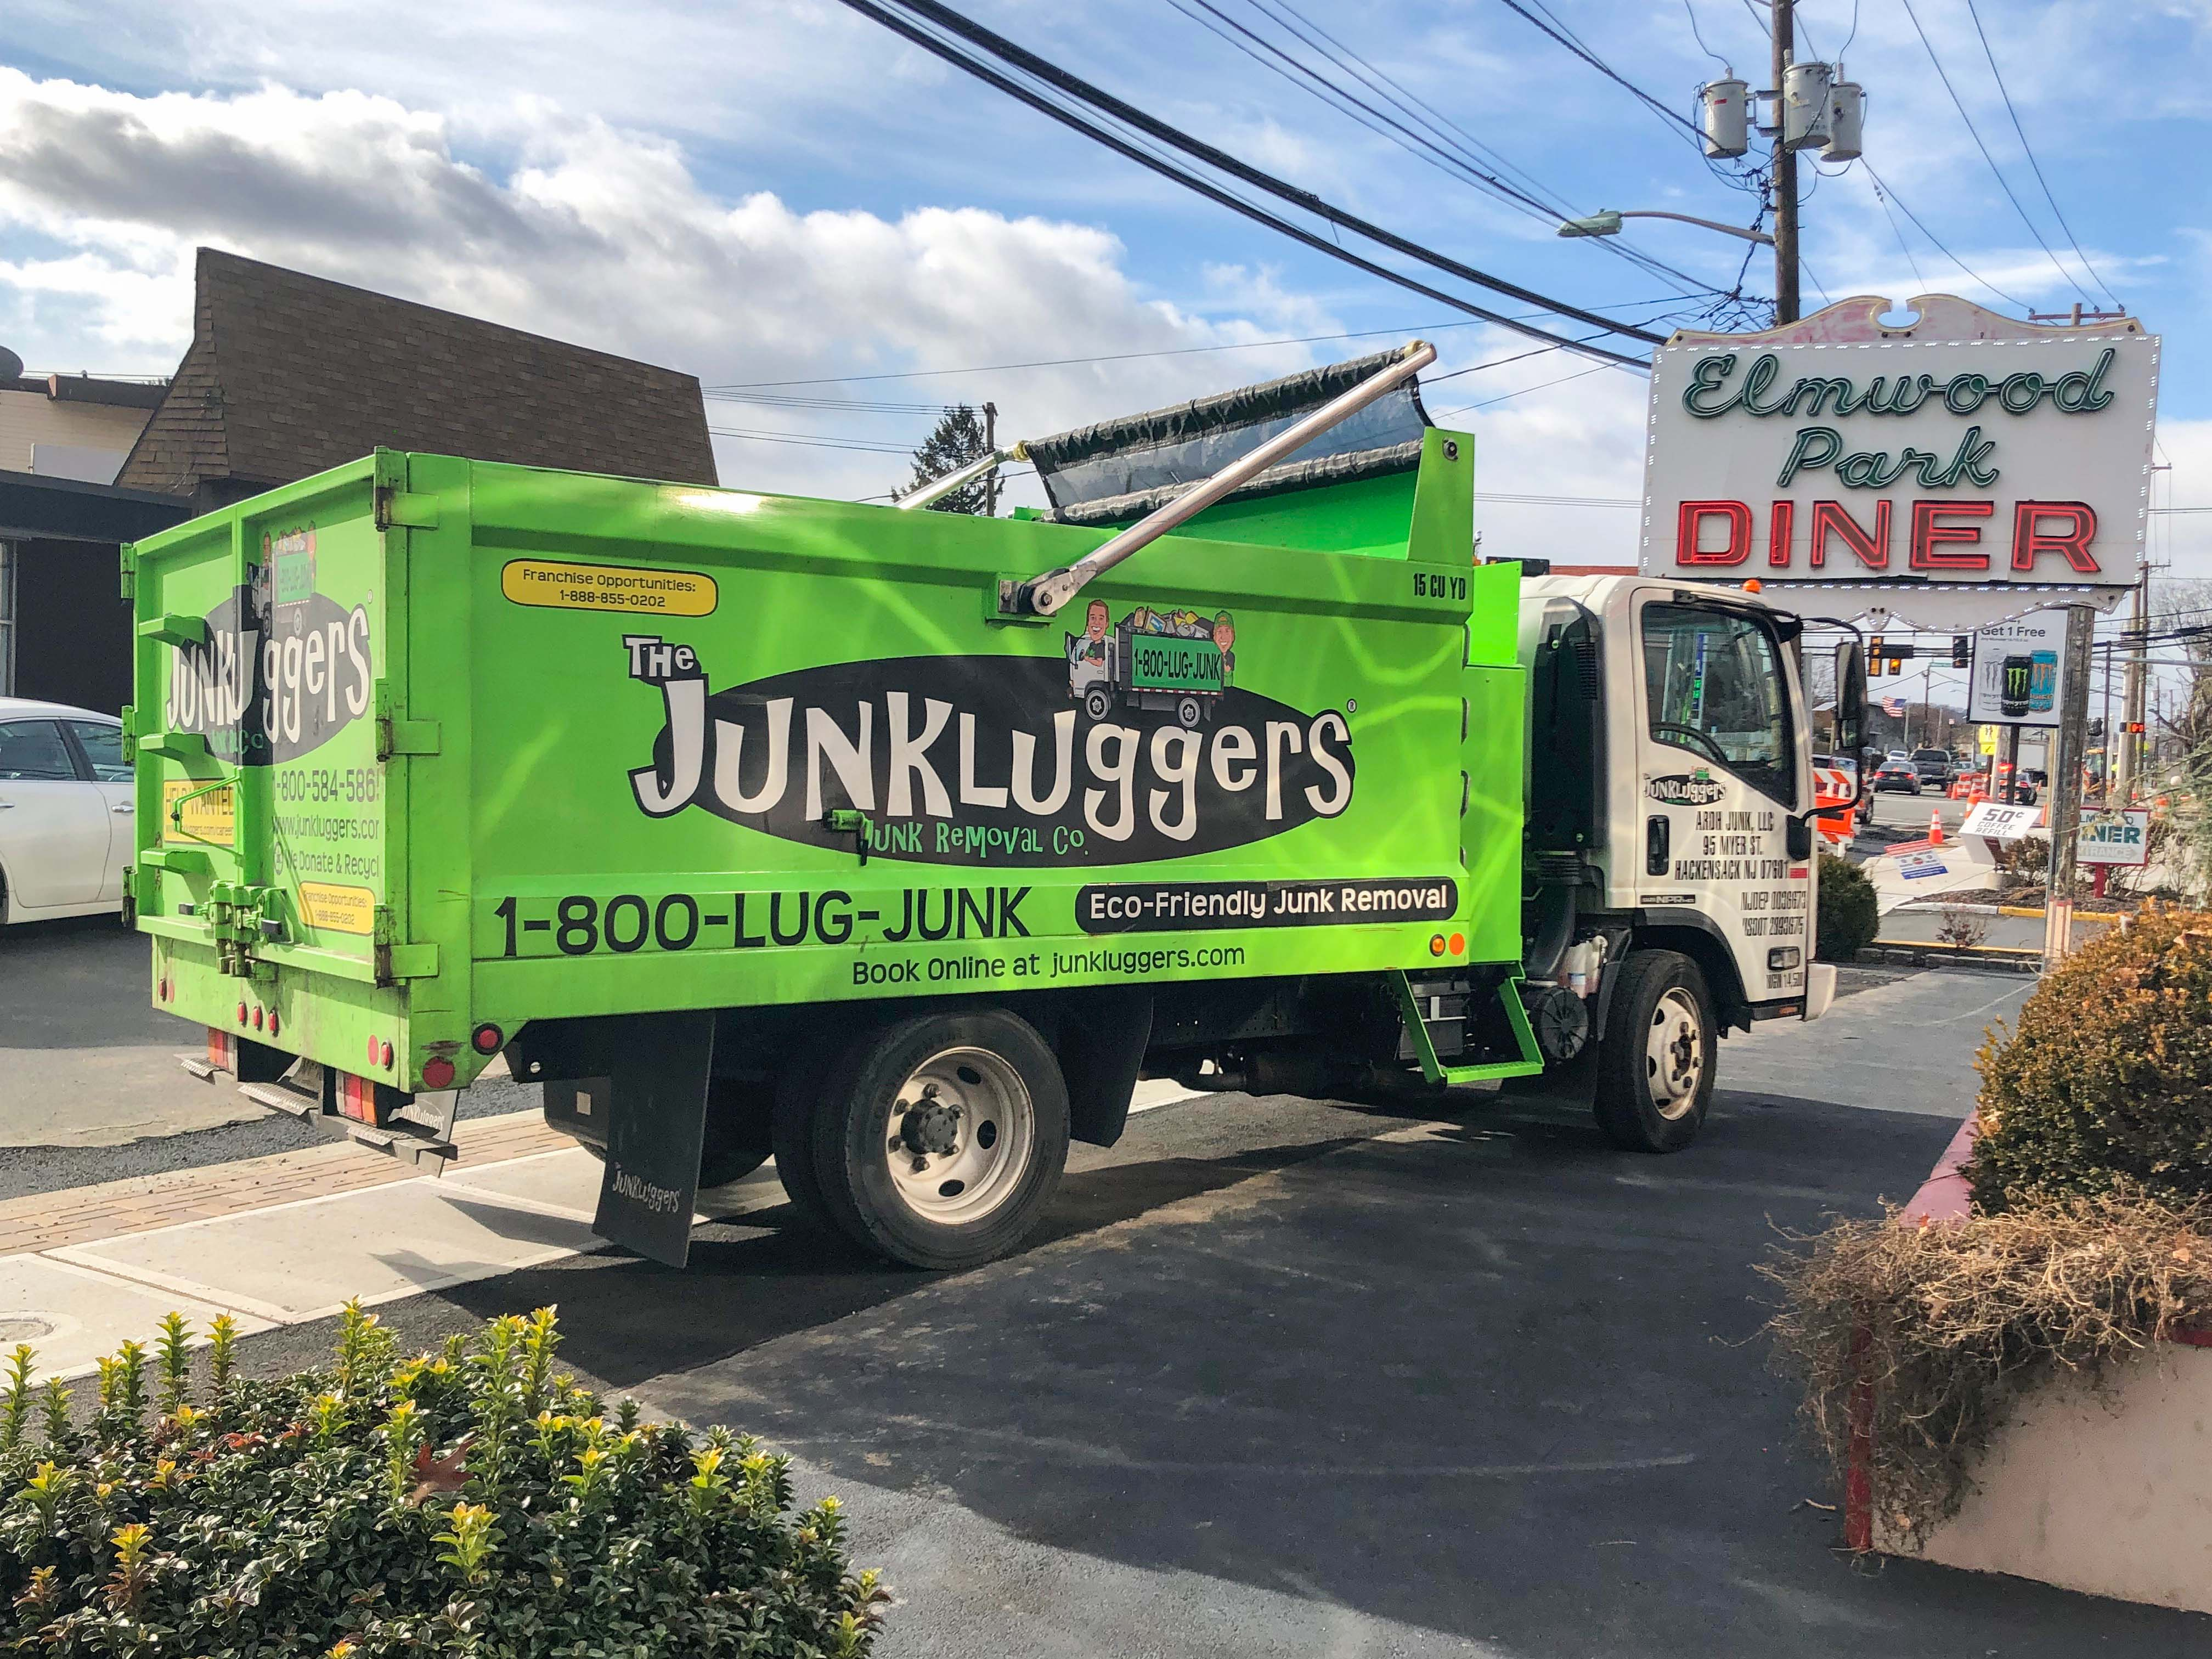 Junk Removal Contractor Serving Northern New Jersey